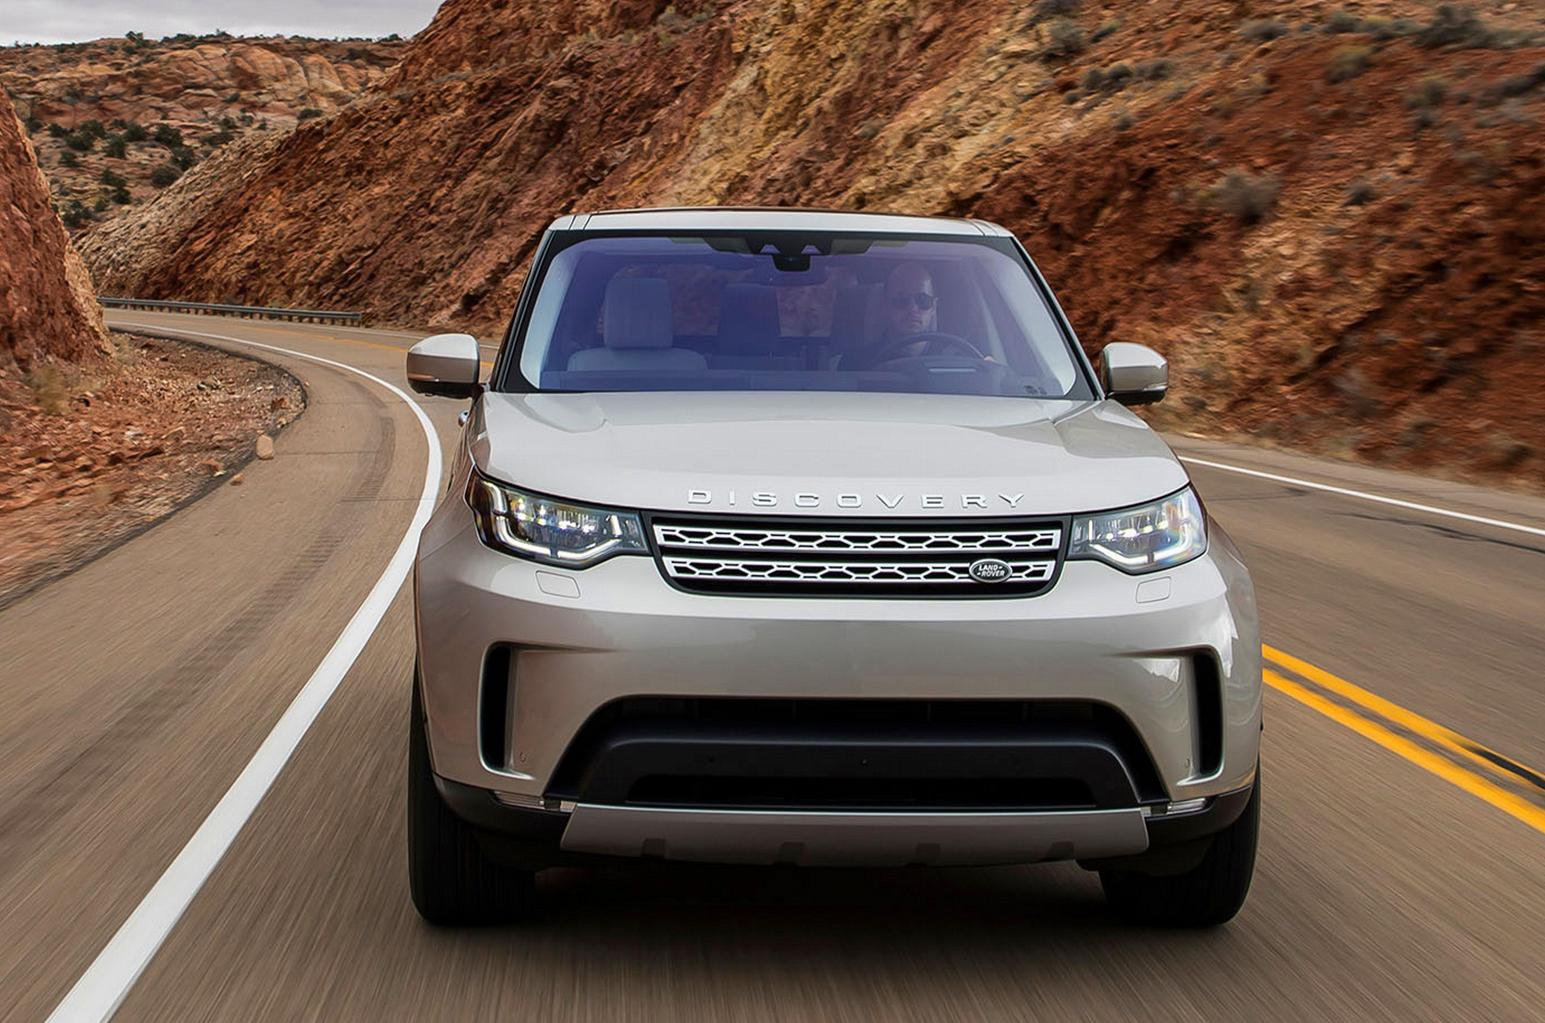 2017 Land Rover Discovery verdict and spec